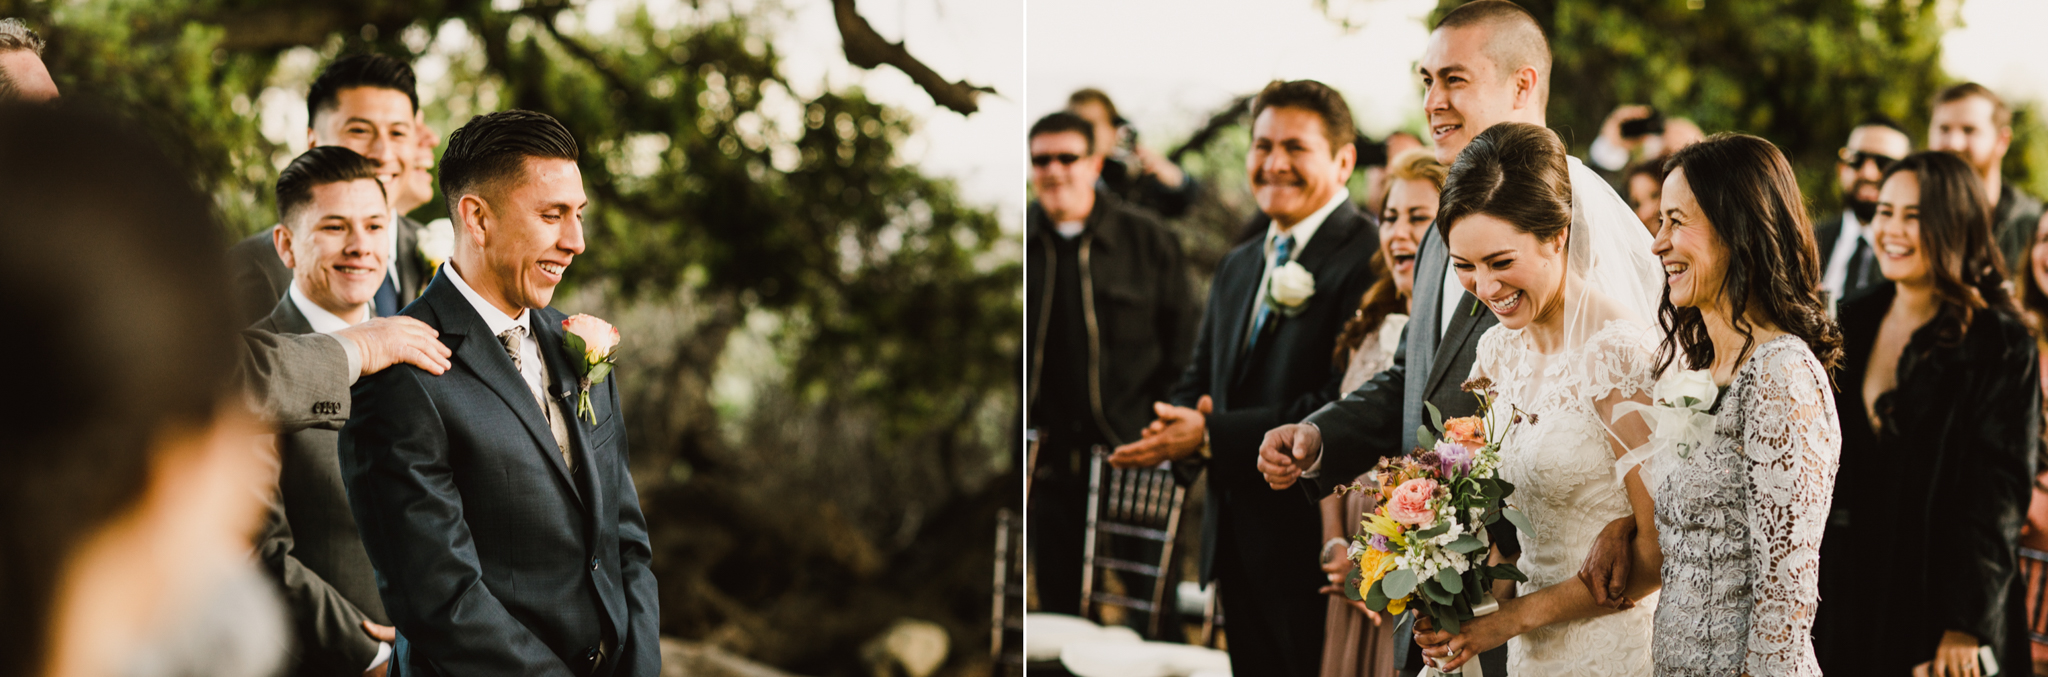 ©Isaiah-&-Taylor-Photography---Highland-Springs-Resort-Wedding,-Cherry-Valley-094.jpg